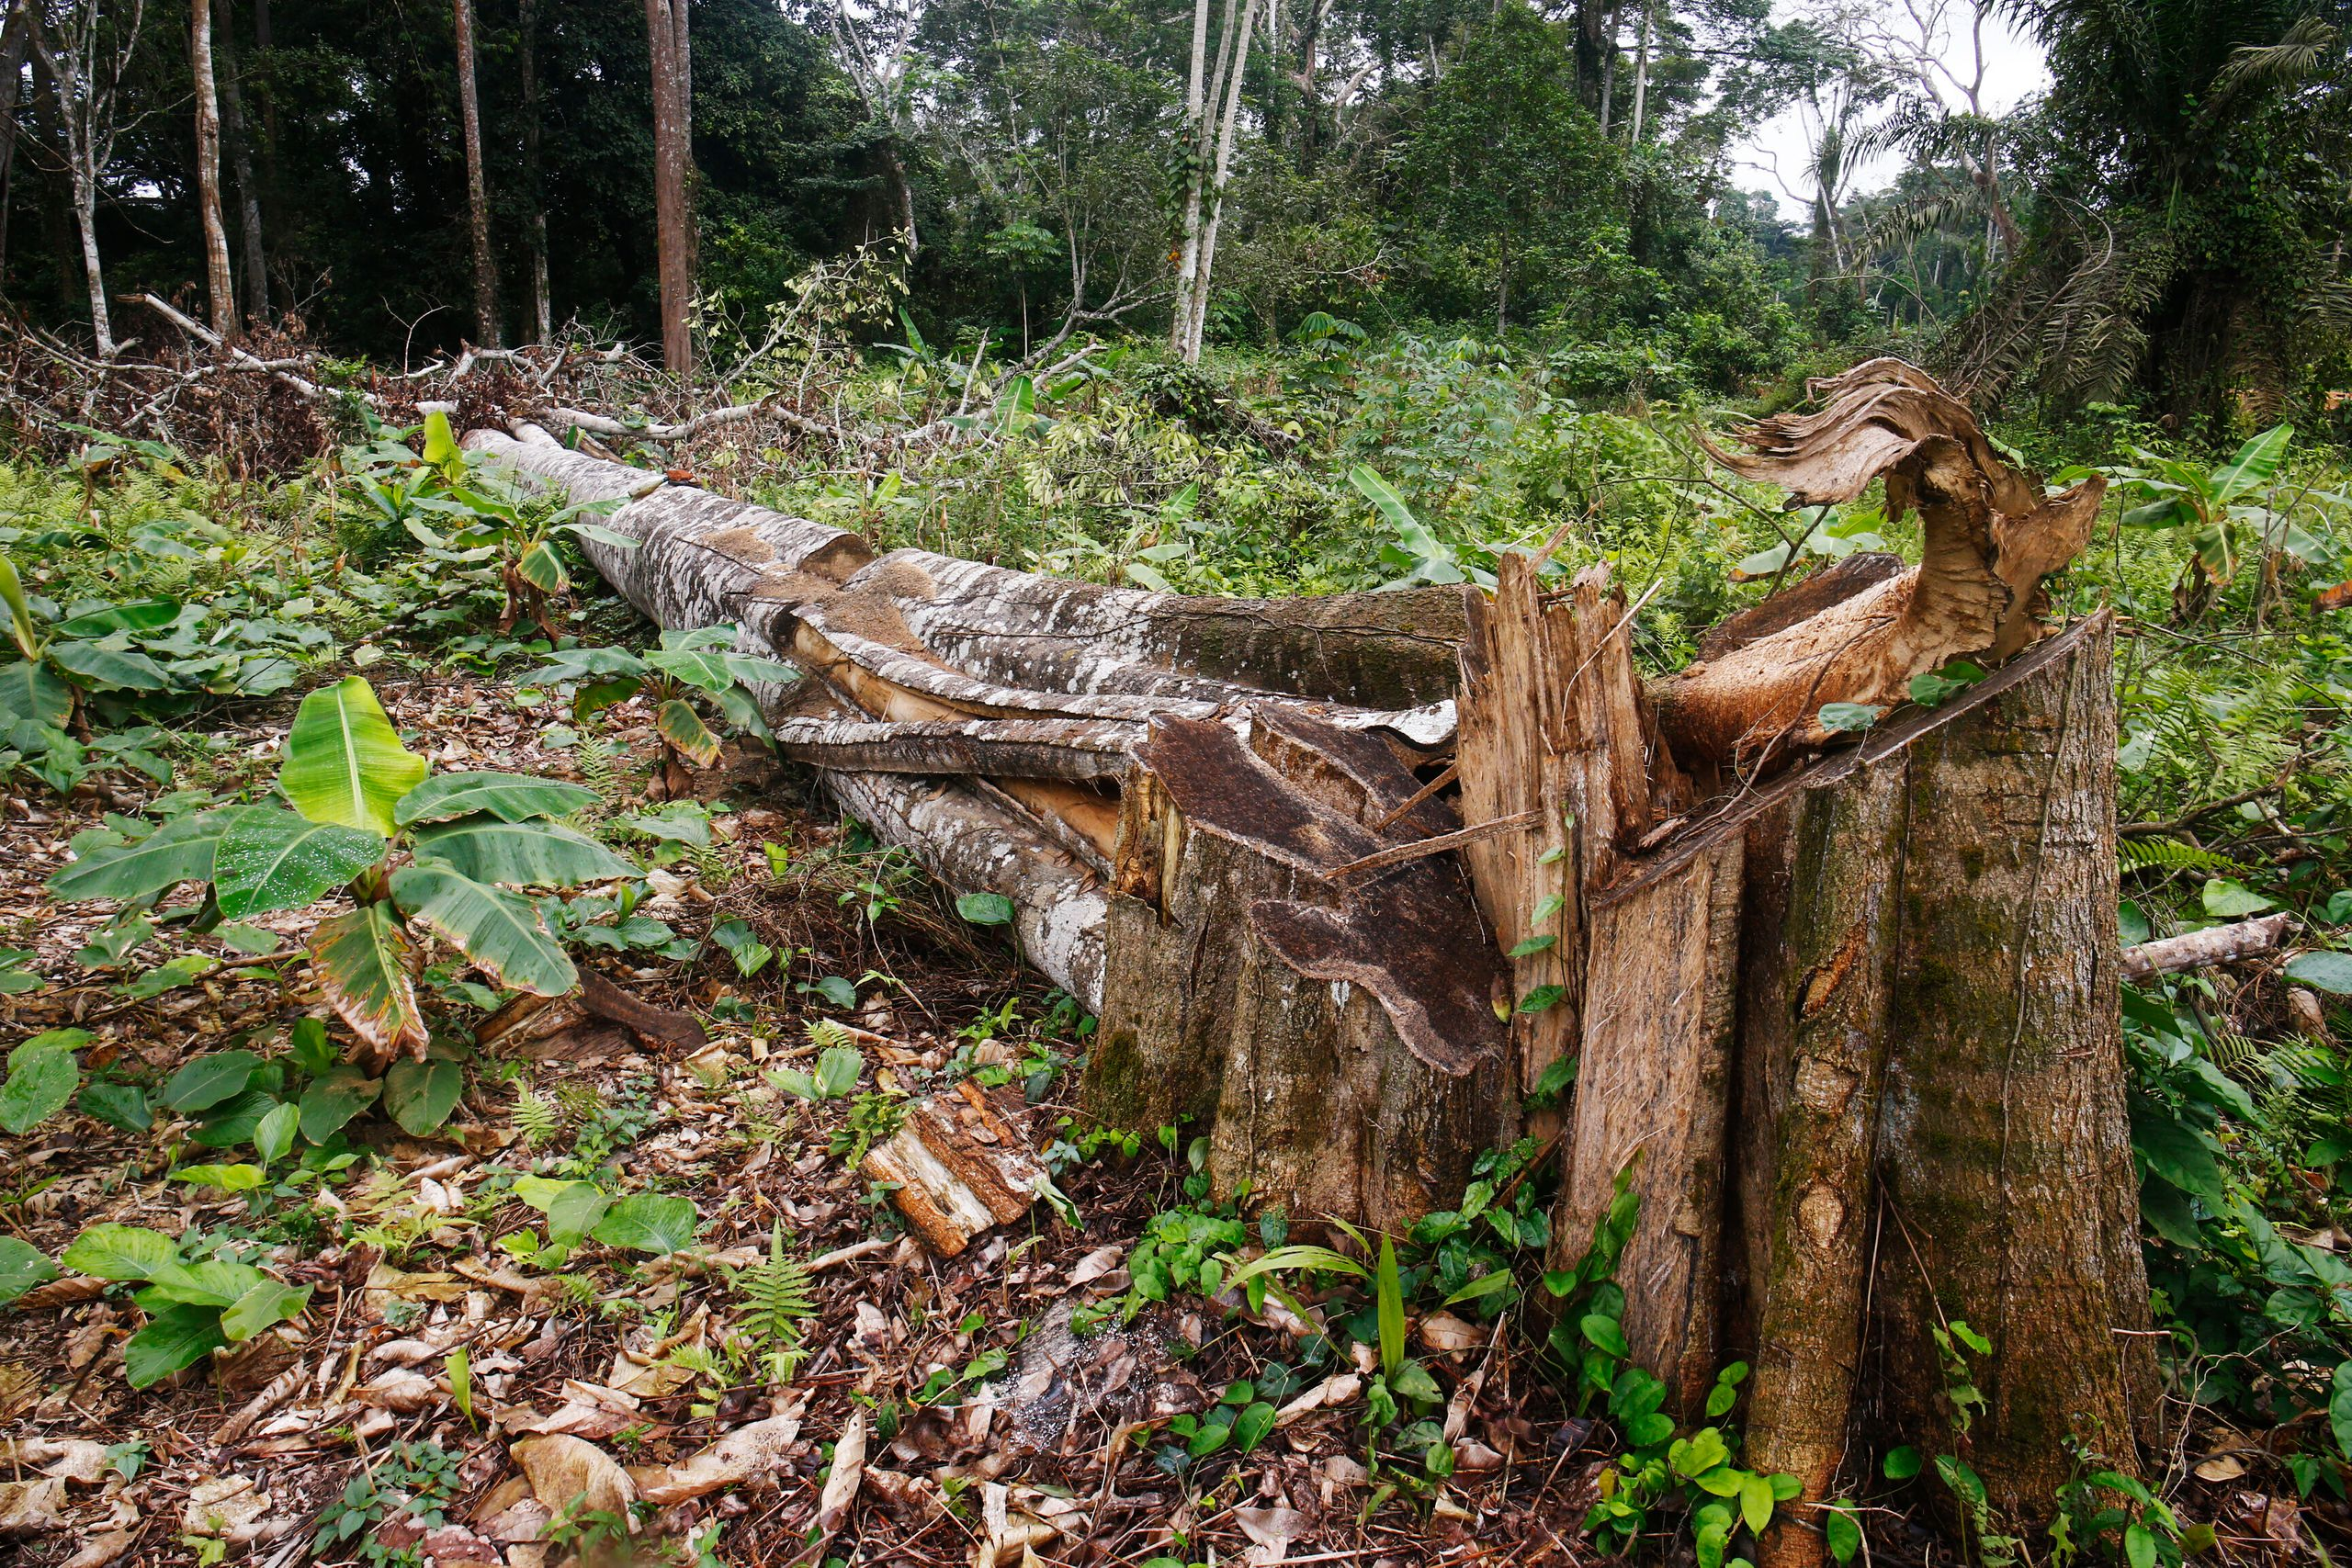 A felled tree on a cocoa farm in Alepe, Ivory Coast. Cocoa farms usually require the removal of shade trees, since cocoa tree